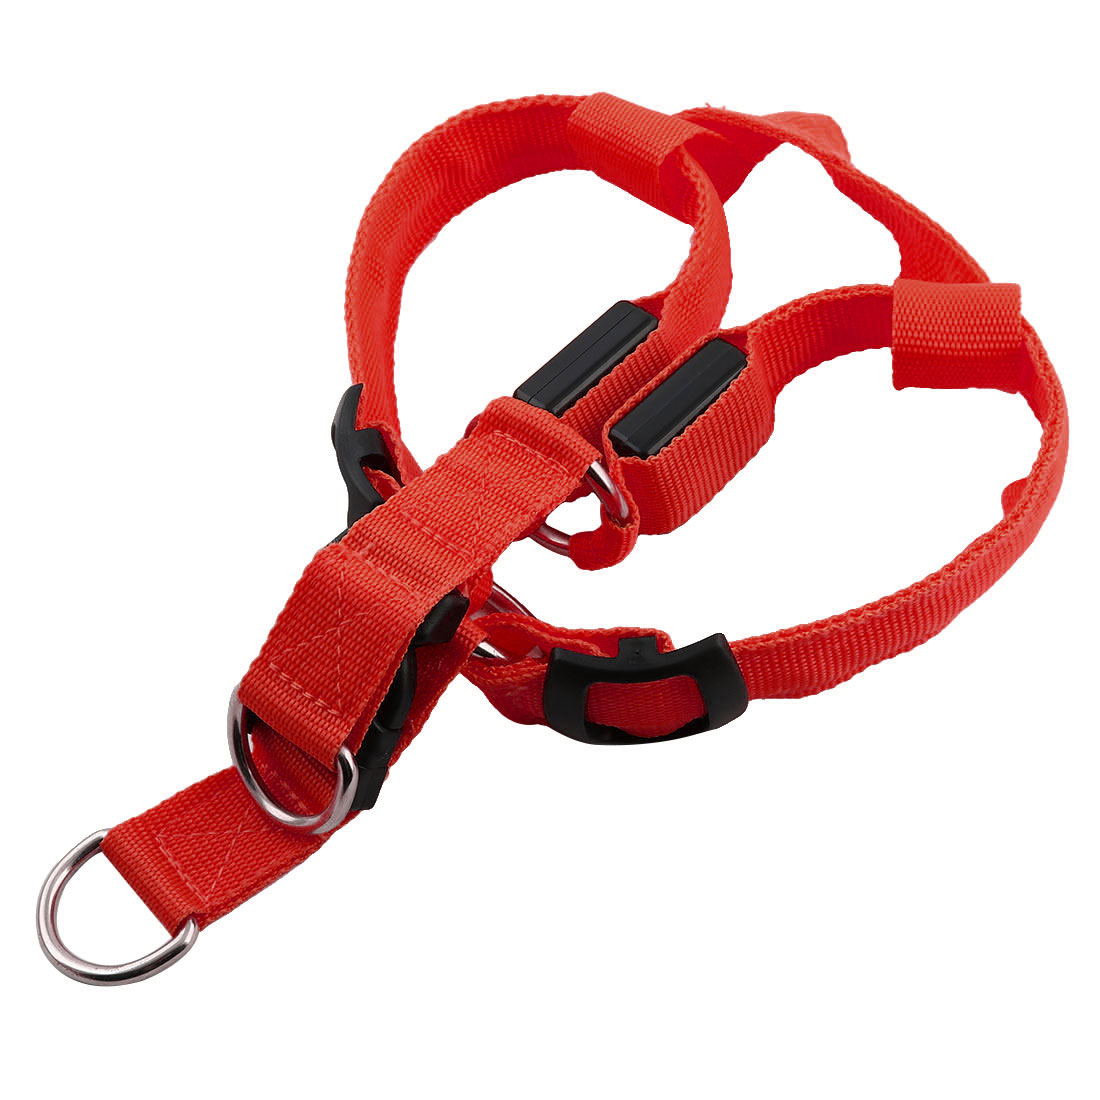 Pet Dog Puppy Nylon LED Flashing Light Night Safety Adjustable Chest Strap Red